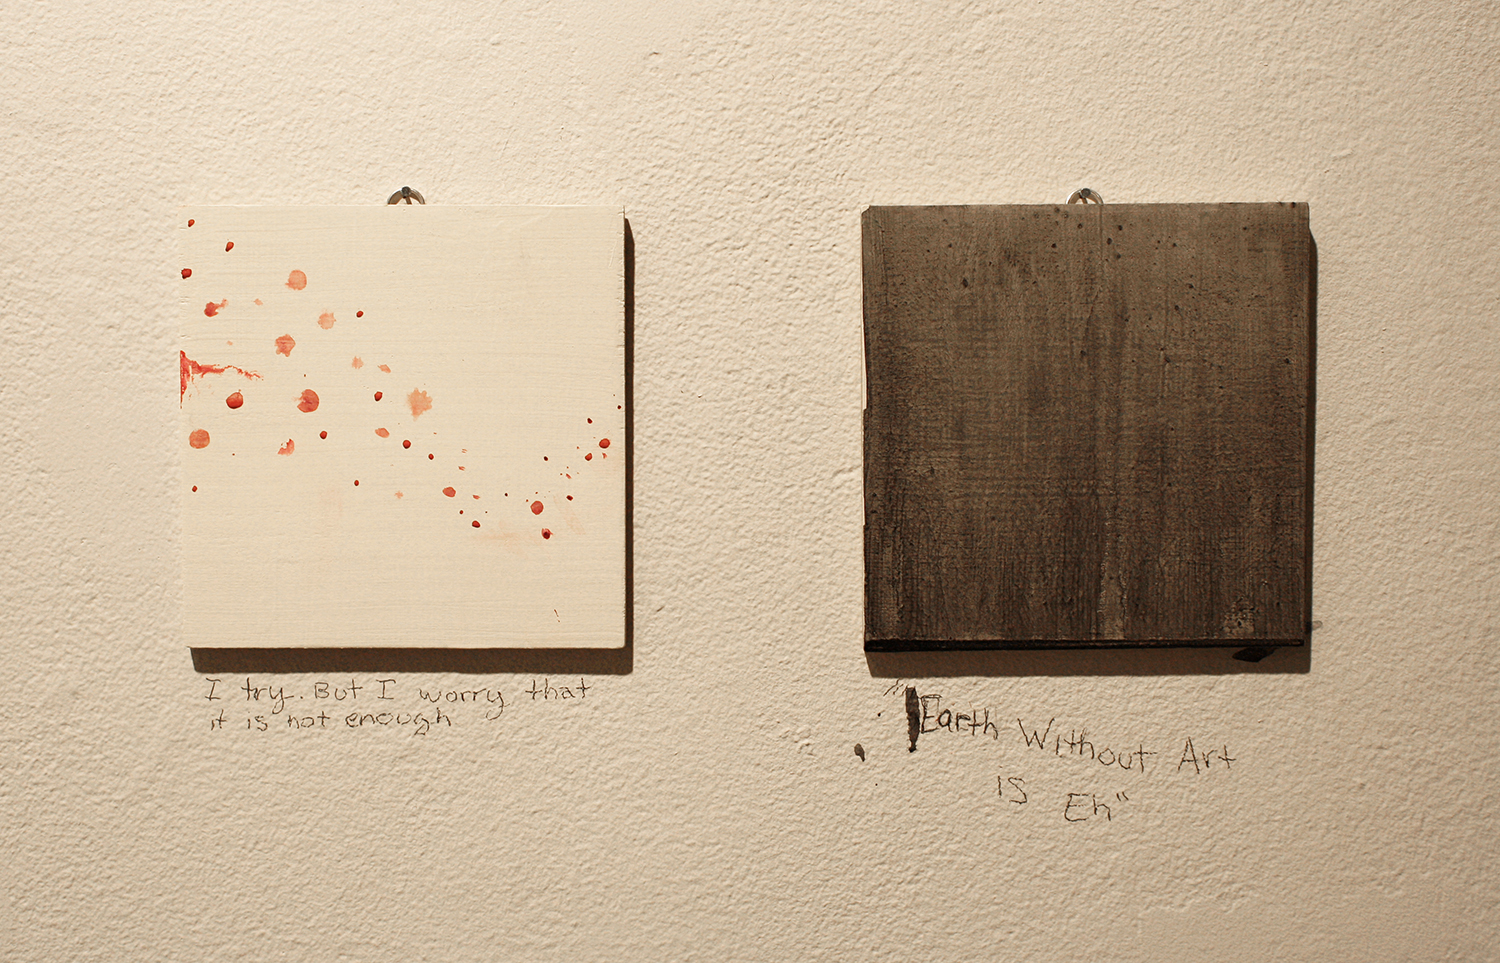 Today speak only in pictures , 2013, 2 of 75 completed paintings, 2013, acrylic on wood, 5.5 x 5.5 in.